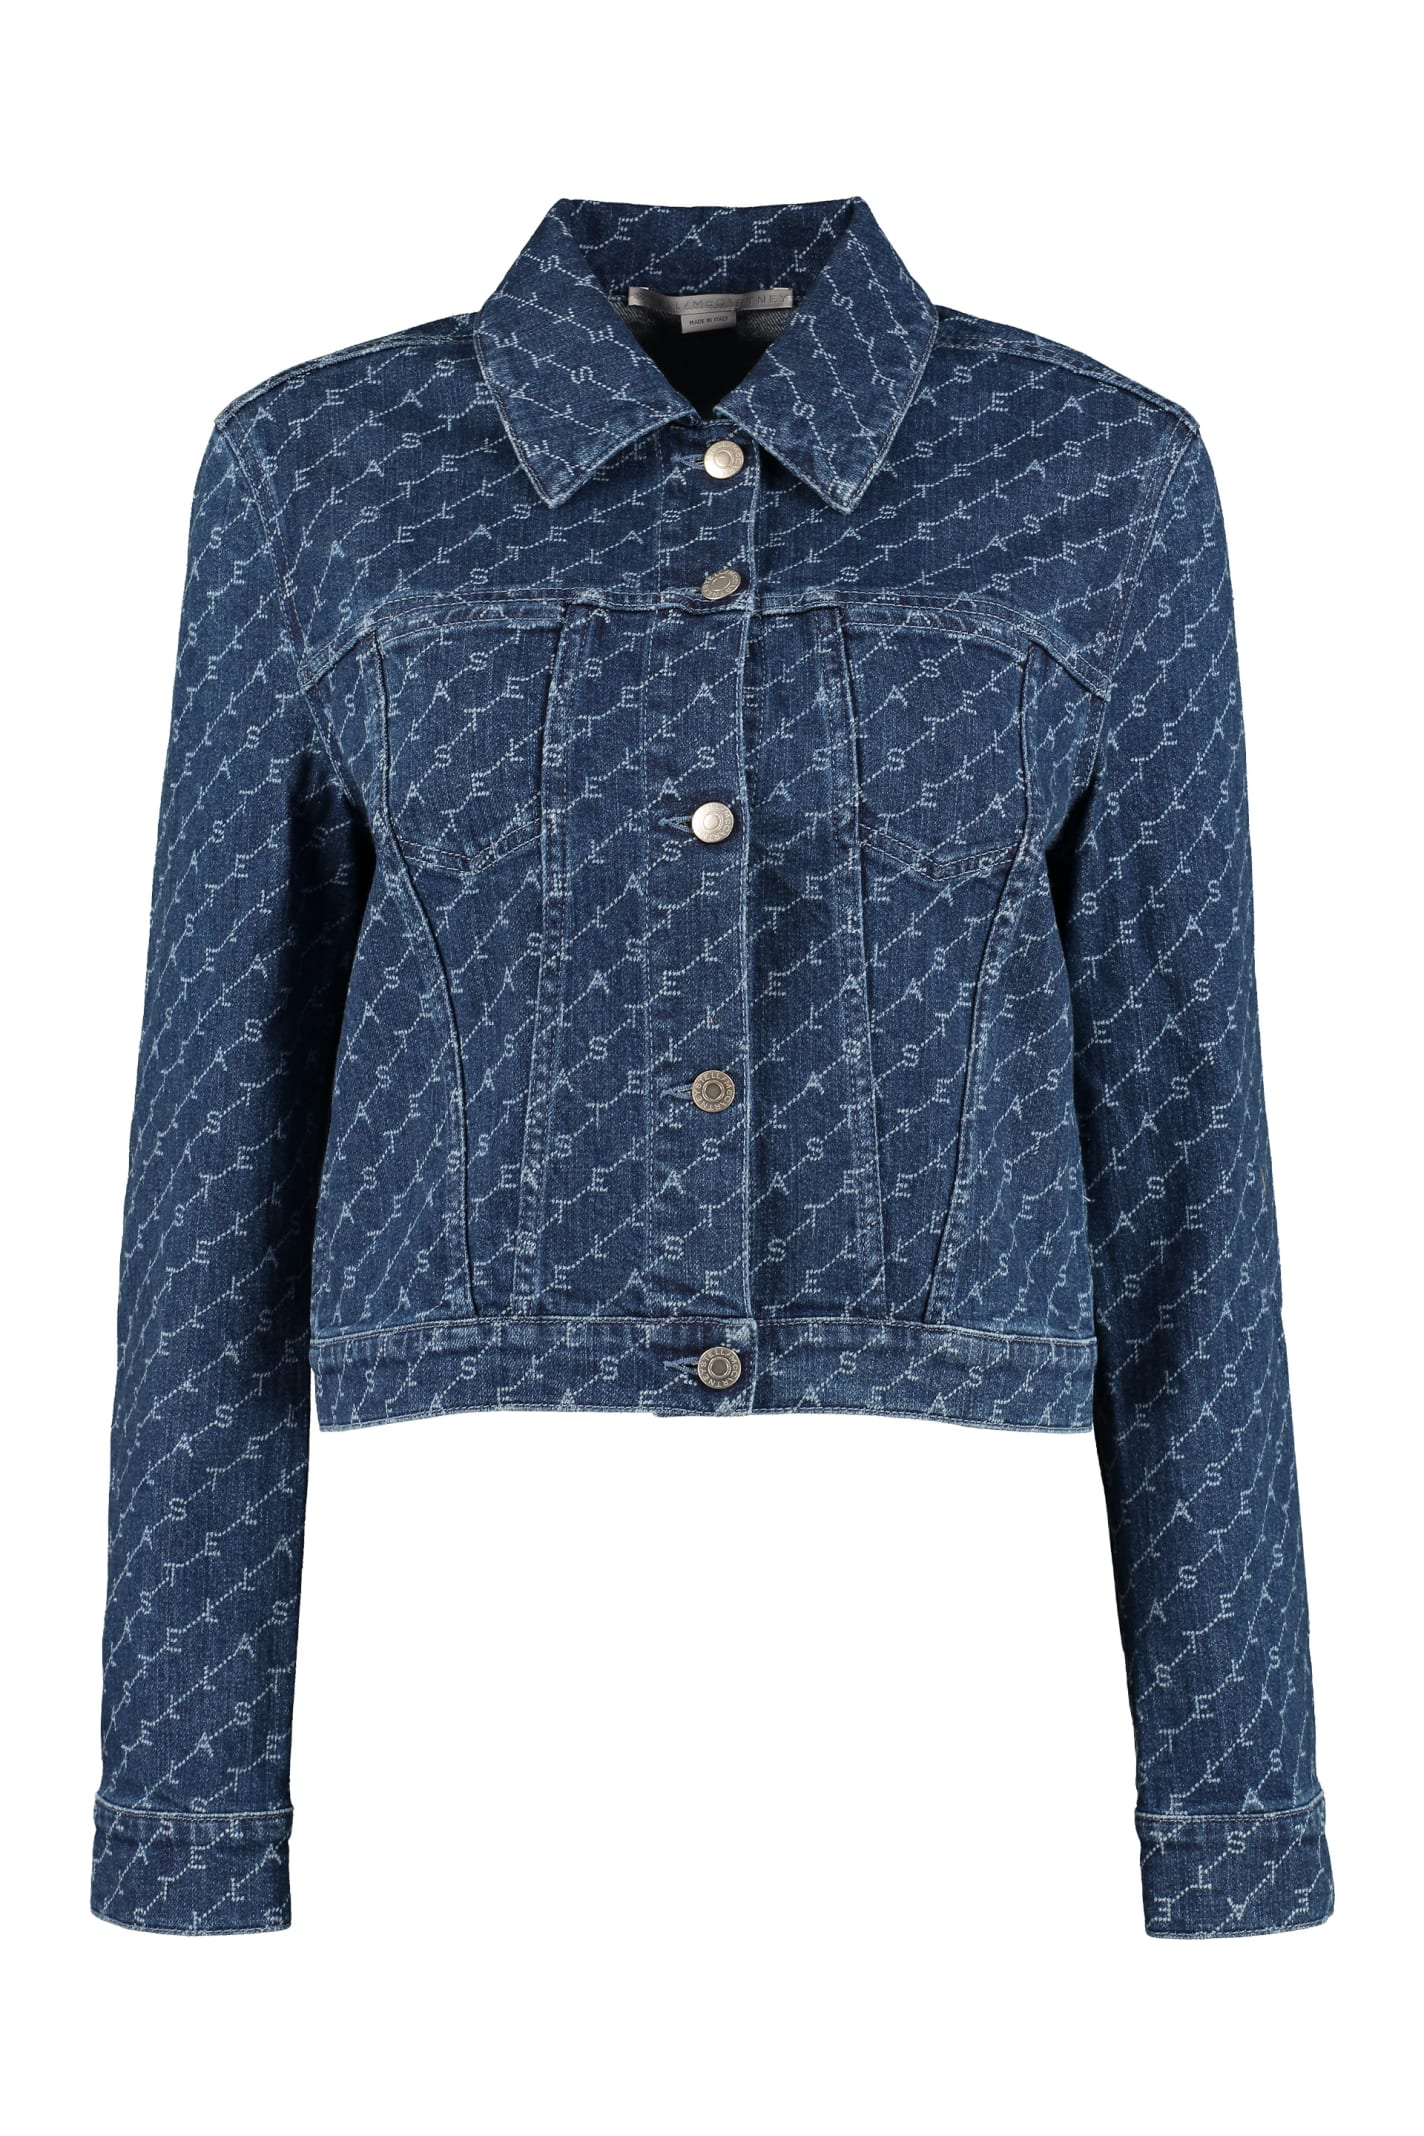 Stella Mccartney Jackets DENIM JACKET